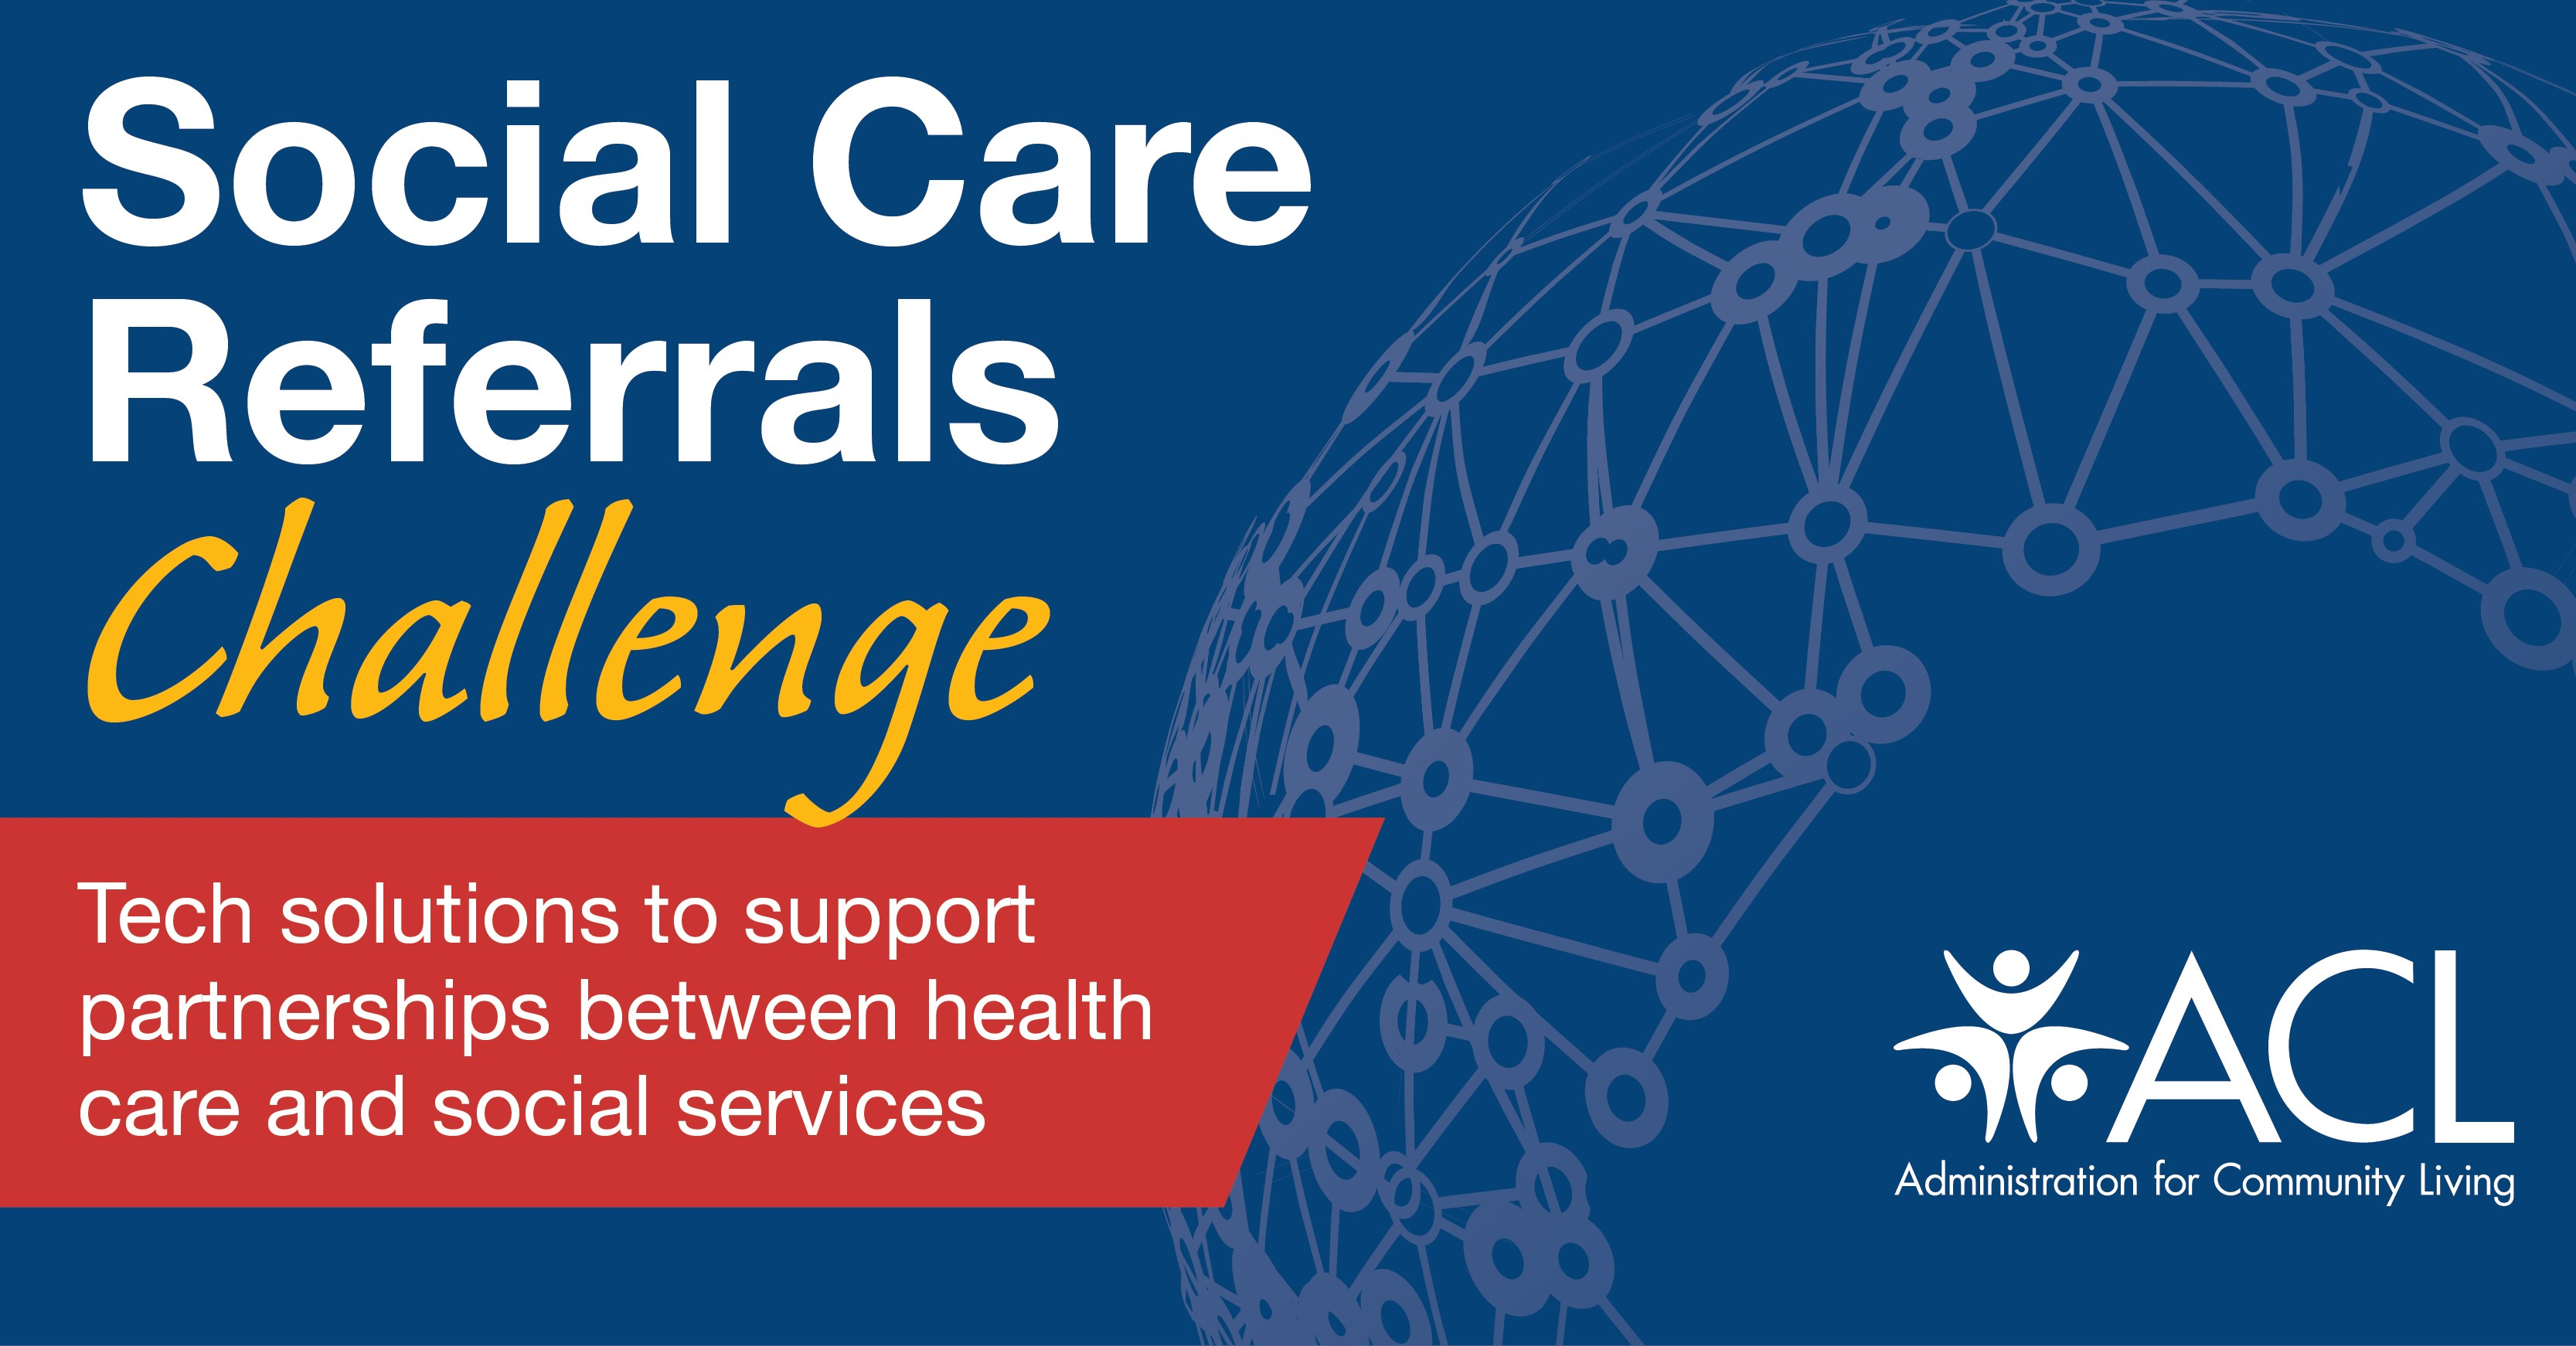 Social Care Referrals Challenge: Tech solutions to support partnerships between health care and social services